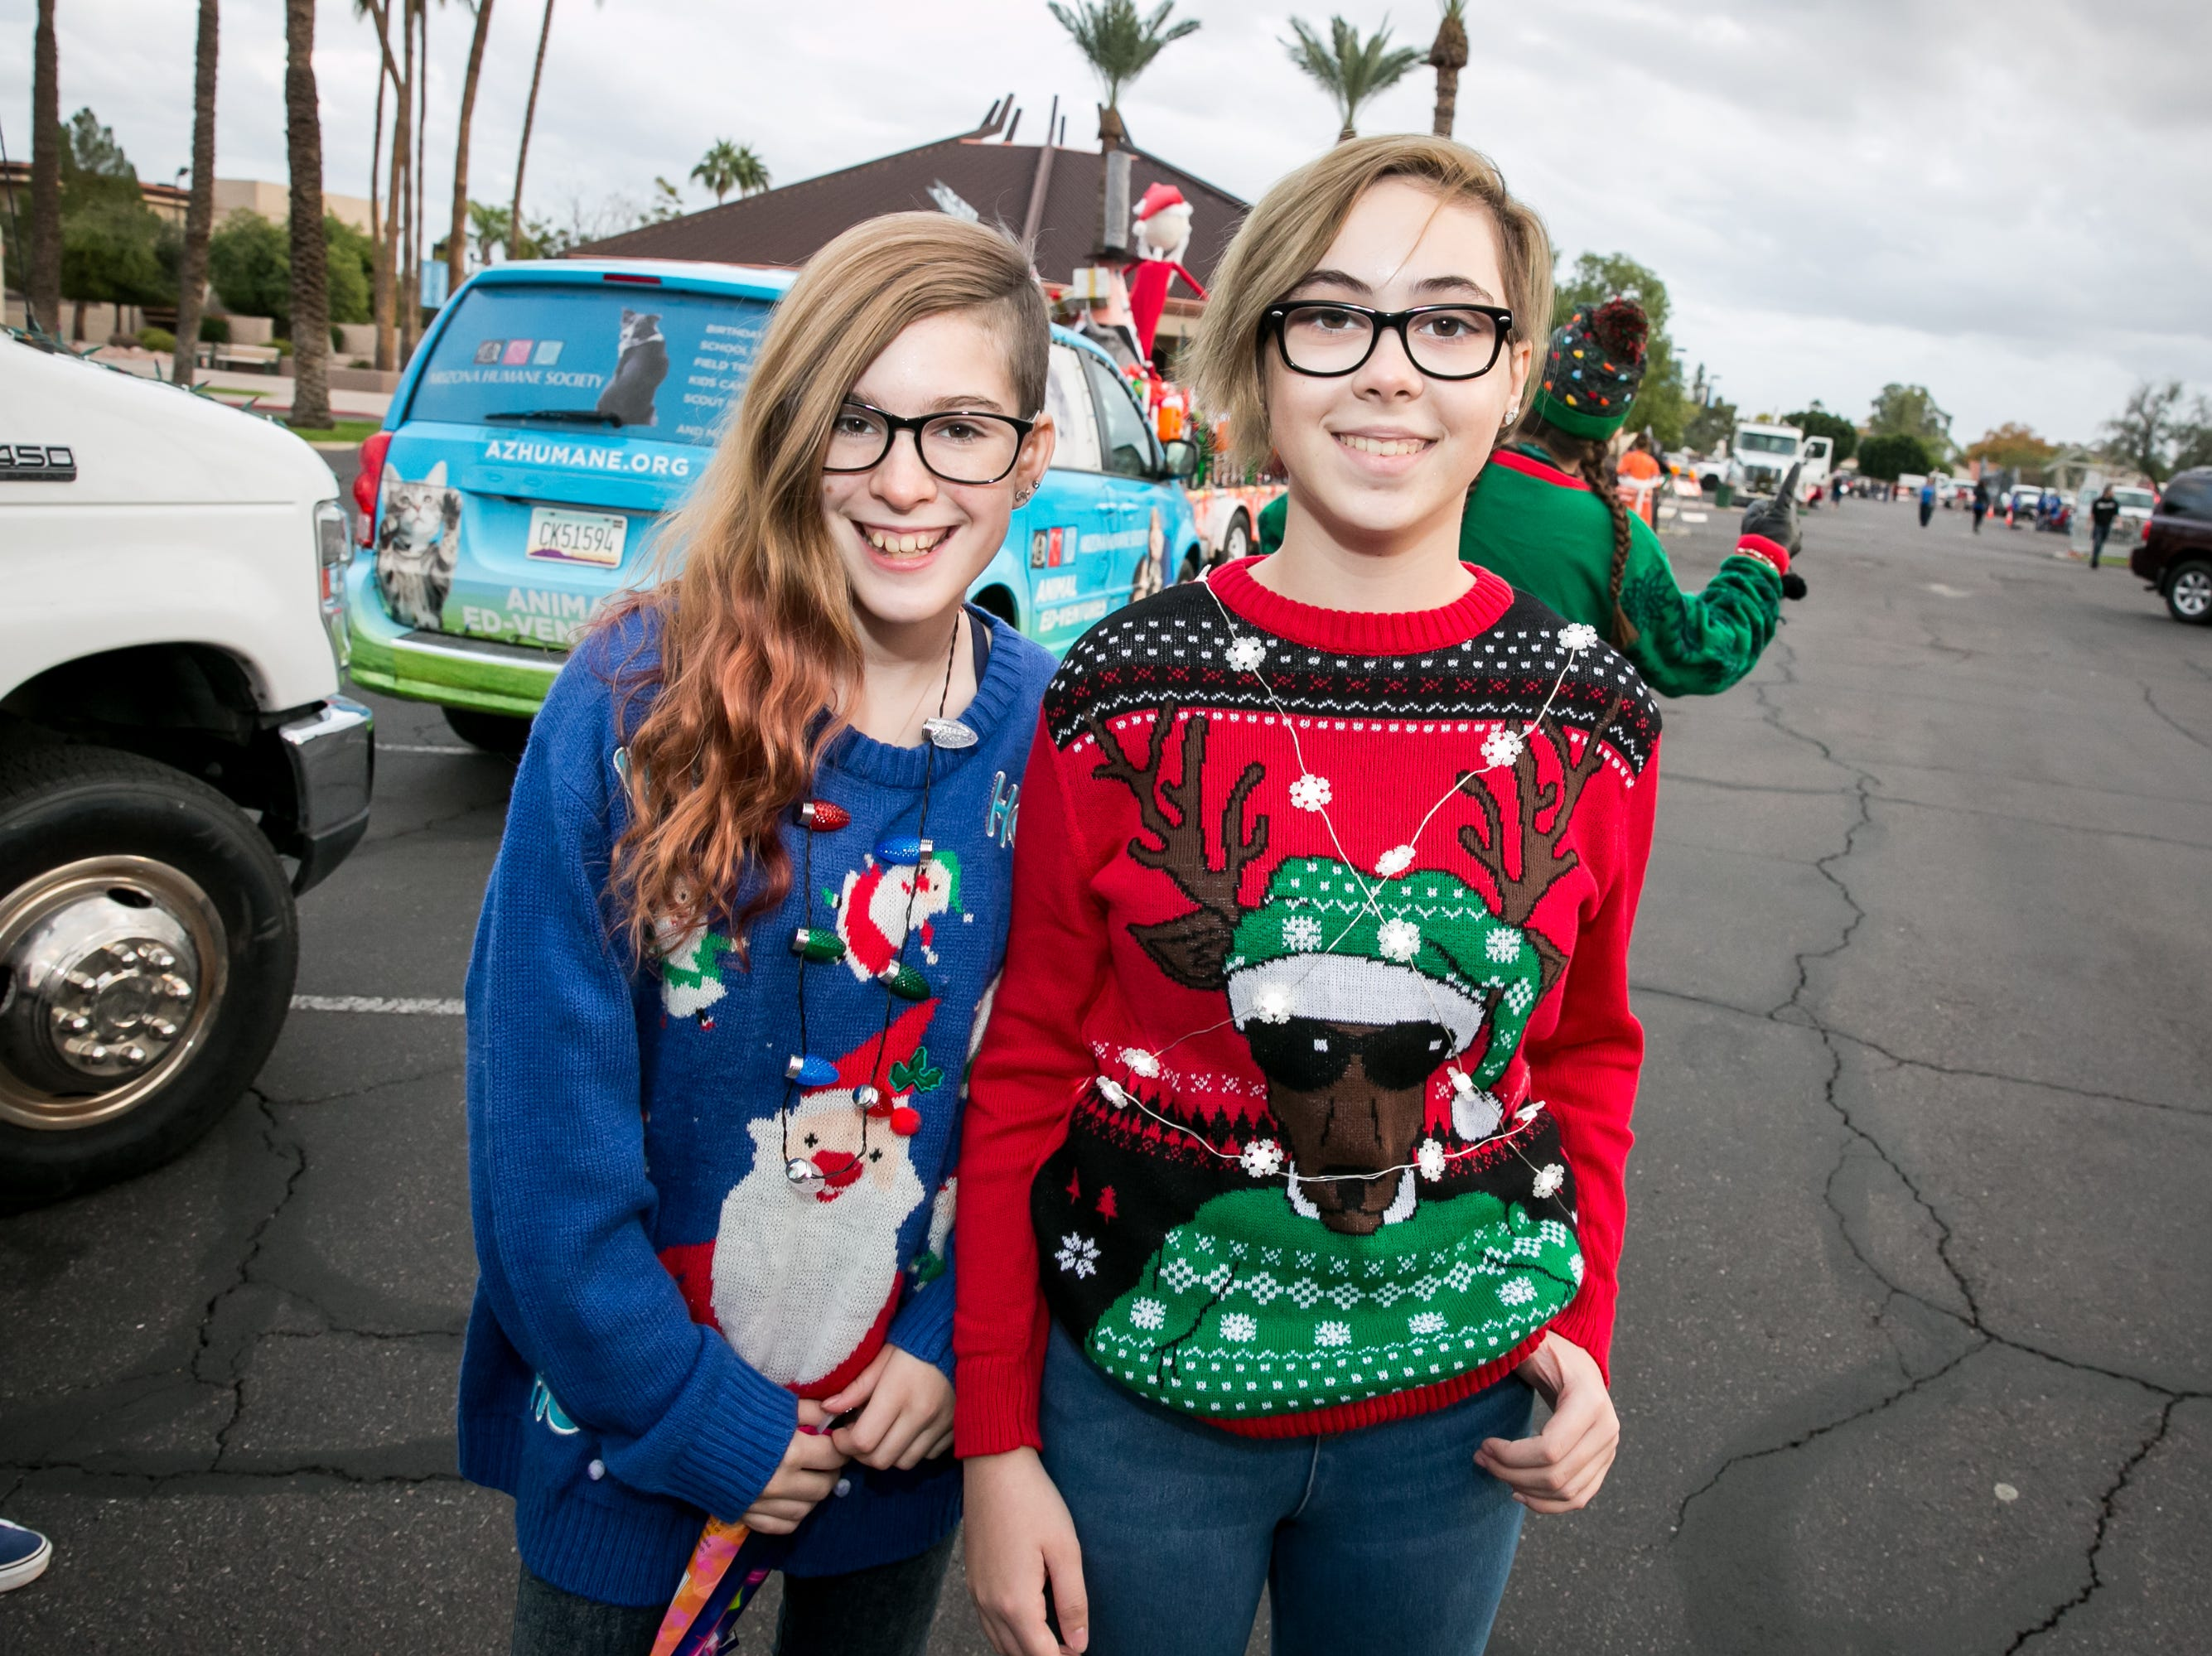 These two had impeccable tastes in holiday sweaters during the APS Electric Light Parade in Central Phoenix on Saturday, December 1, 2018.